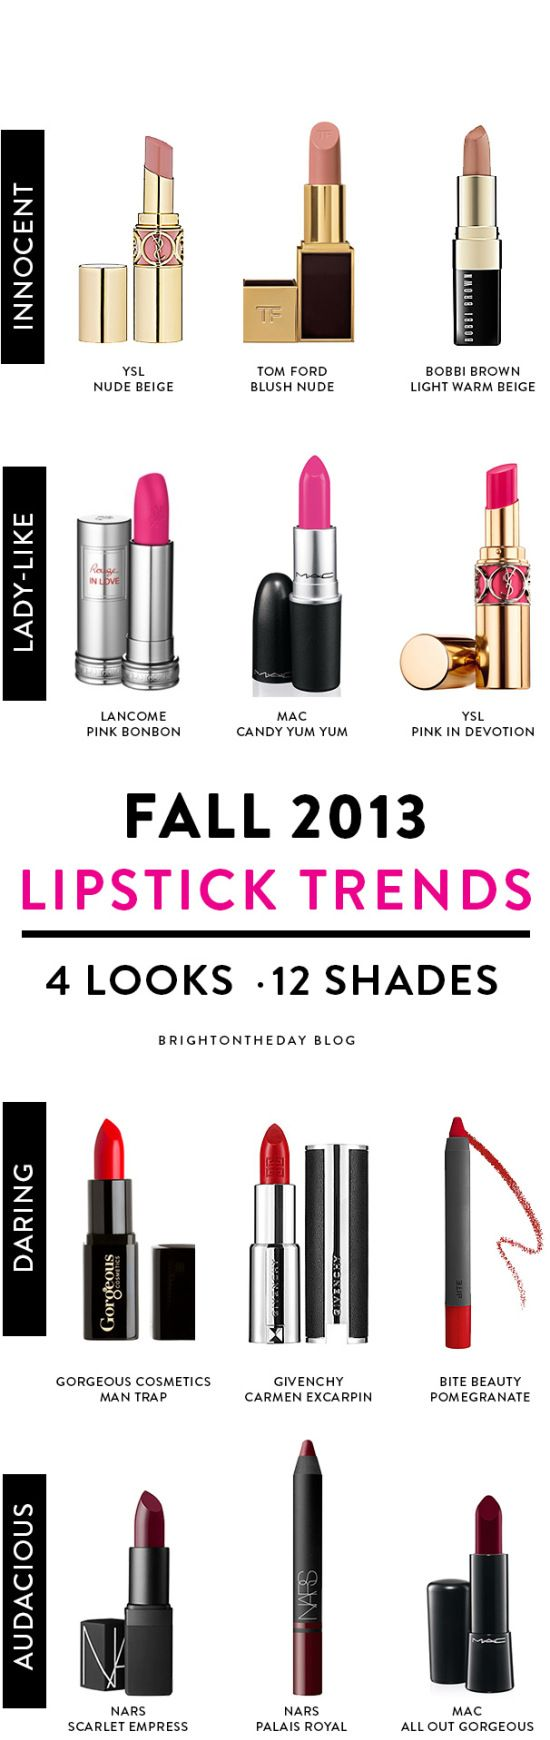 Fall 2013 Lipstick Trends - 4 Looks 12 Shades | BrightonTheDay